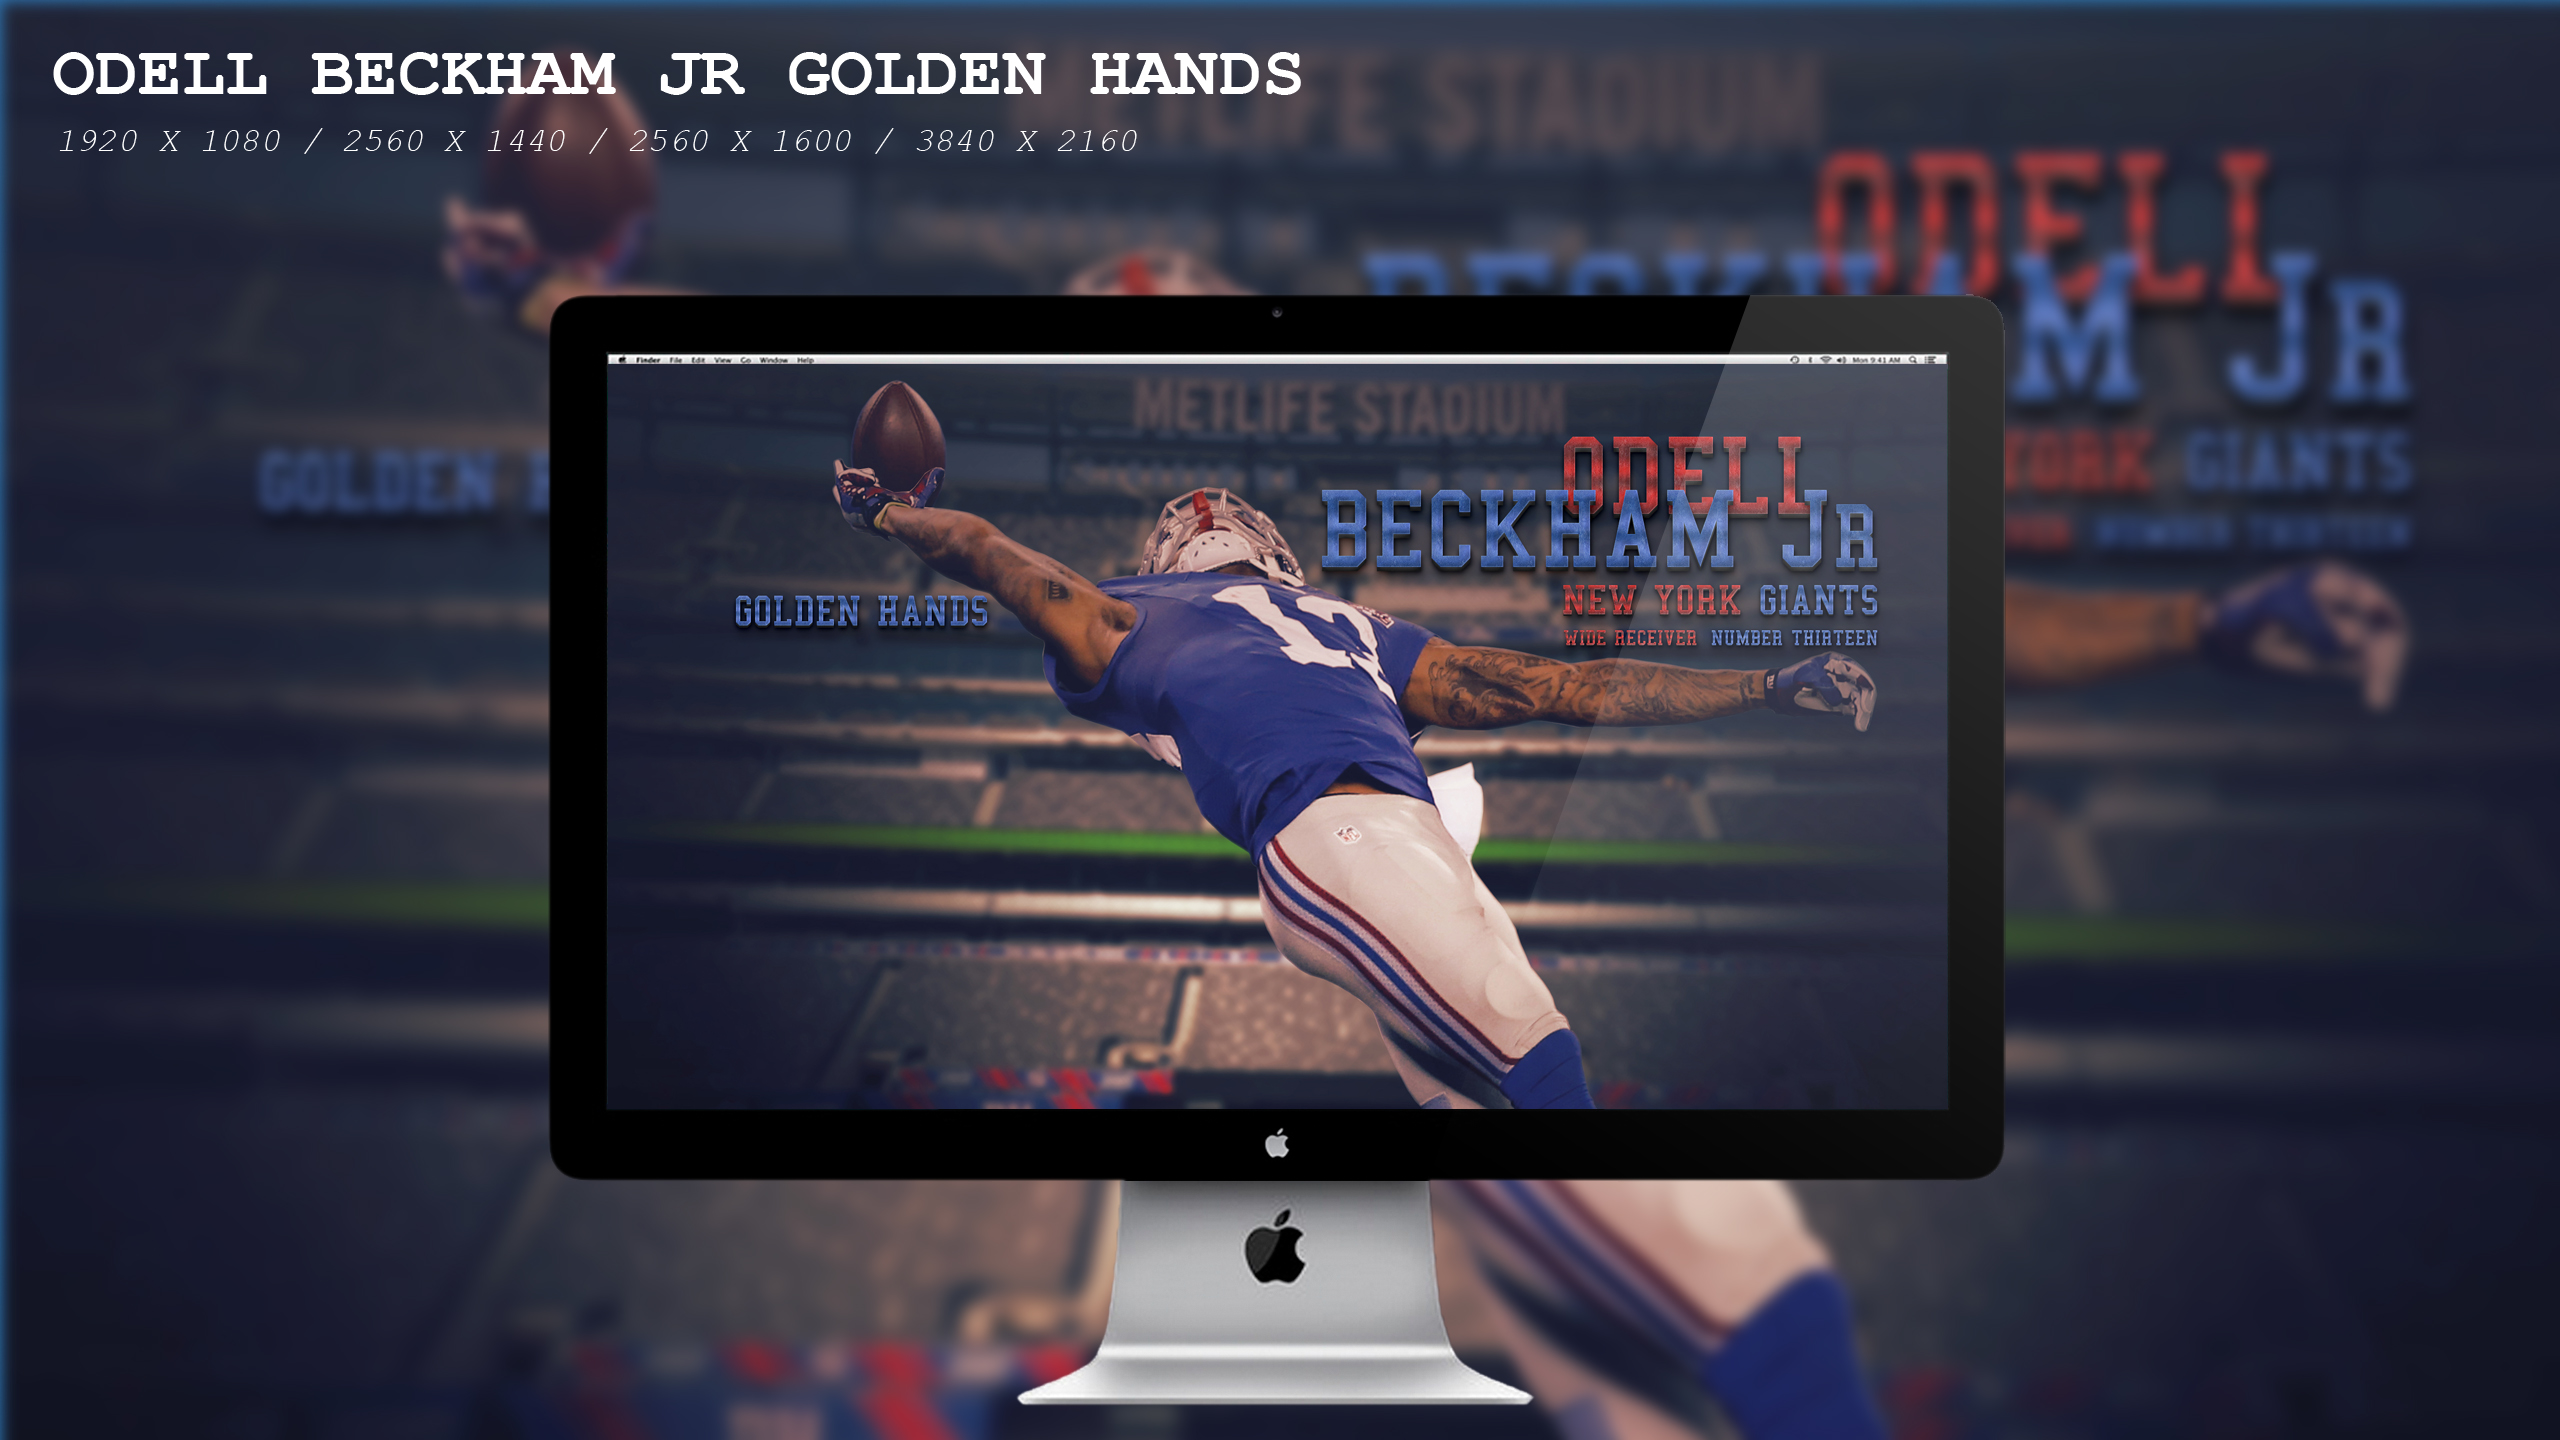 Odell Beckham Jr Golden Hands Wallpaper HD by BeAware8 2560x1440